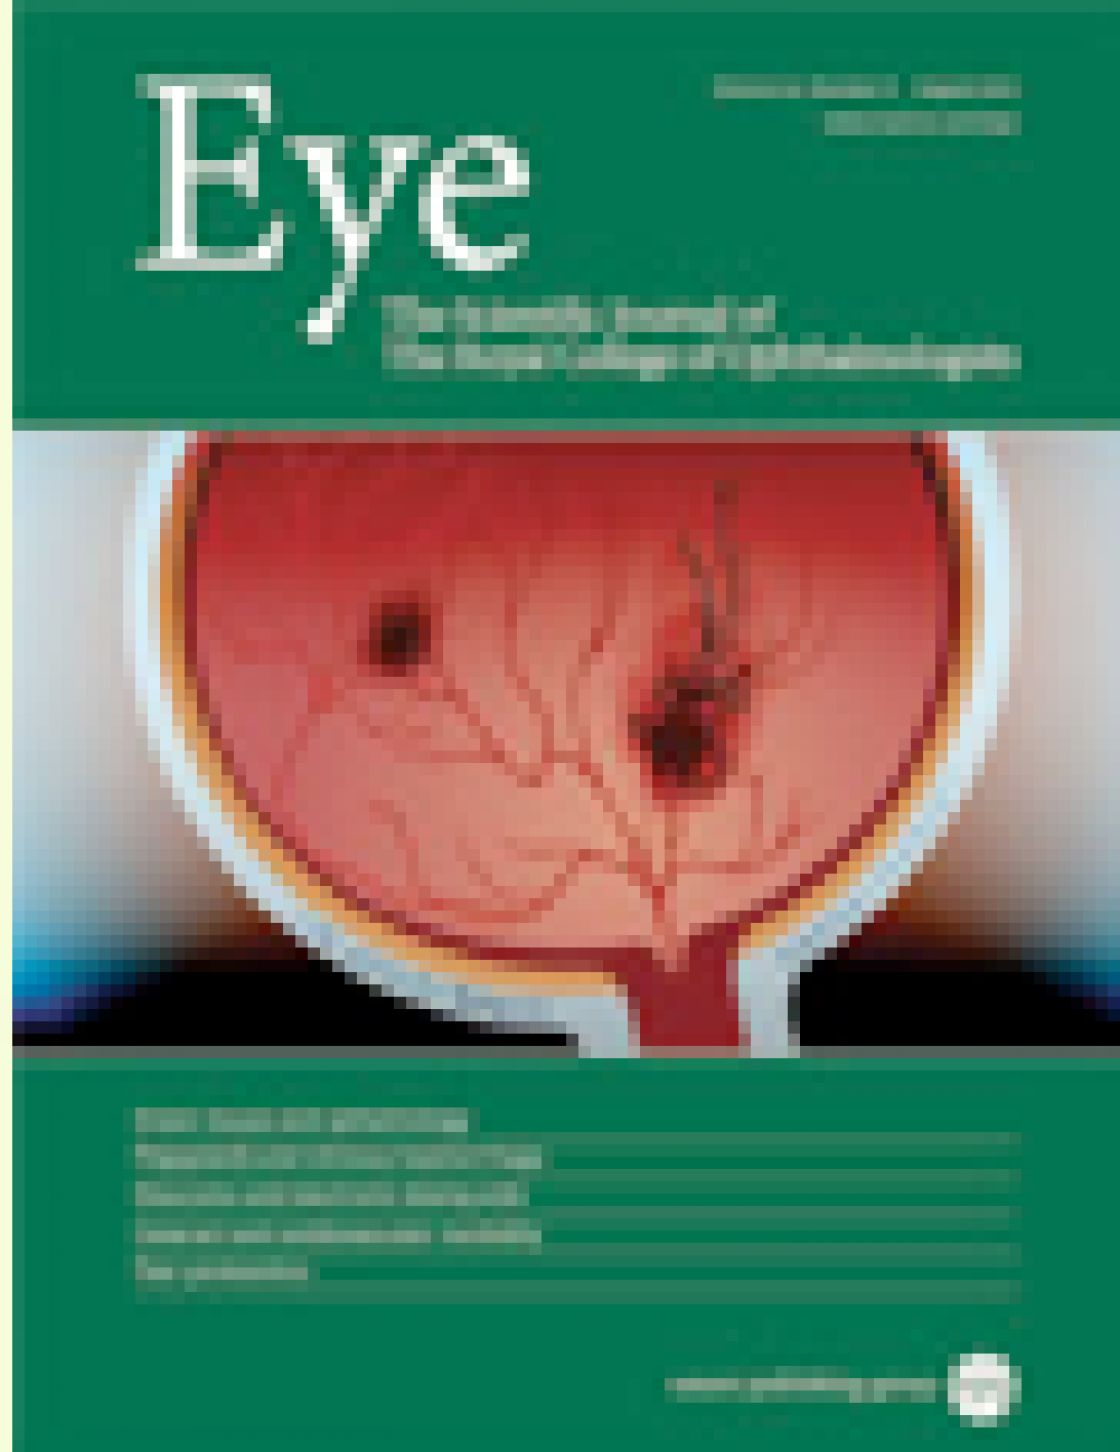 The effect of pupil dilation on retinal nerve fiber layer thickness measurements and their repeatability with Cirrus HD-OCT